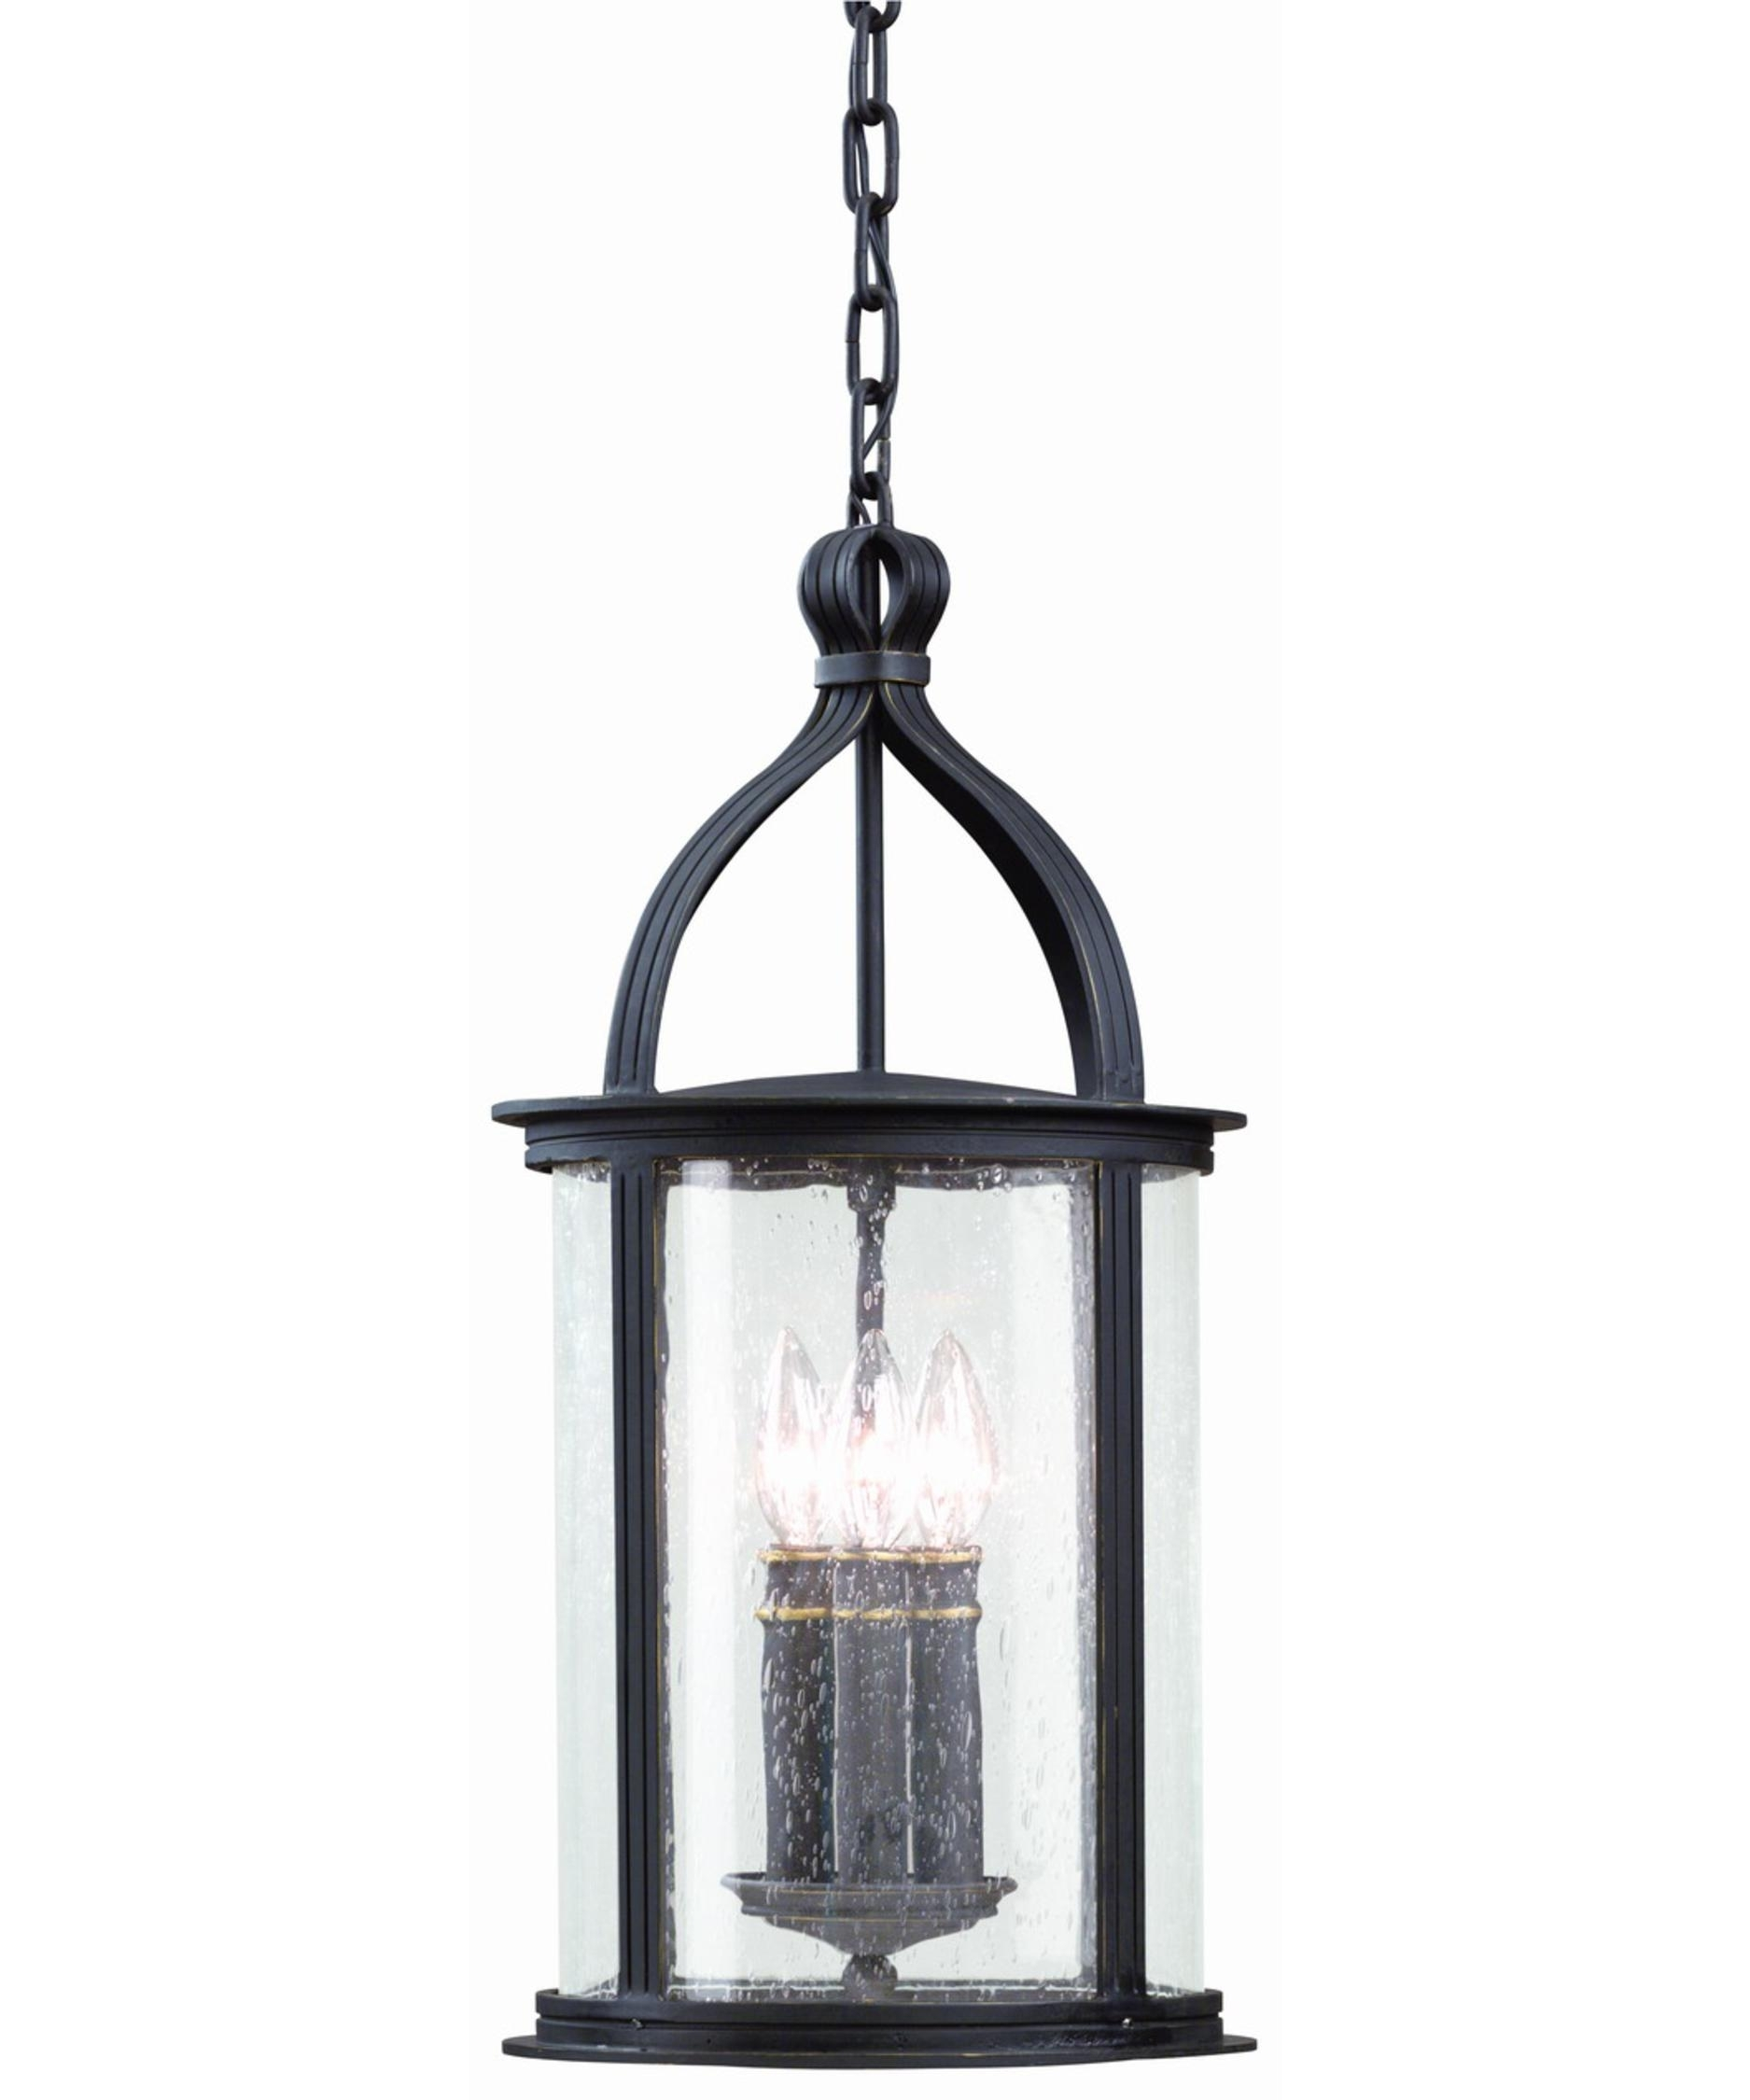 Troy Lighting F9476 Scarsdale 10 Inch Wide 3 Light Outdoor Hanging Throughout Outdoor Hanging Light Fixtures In Black (View 10 of 15)